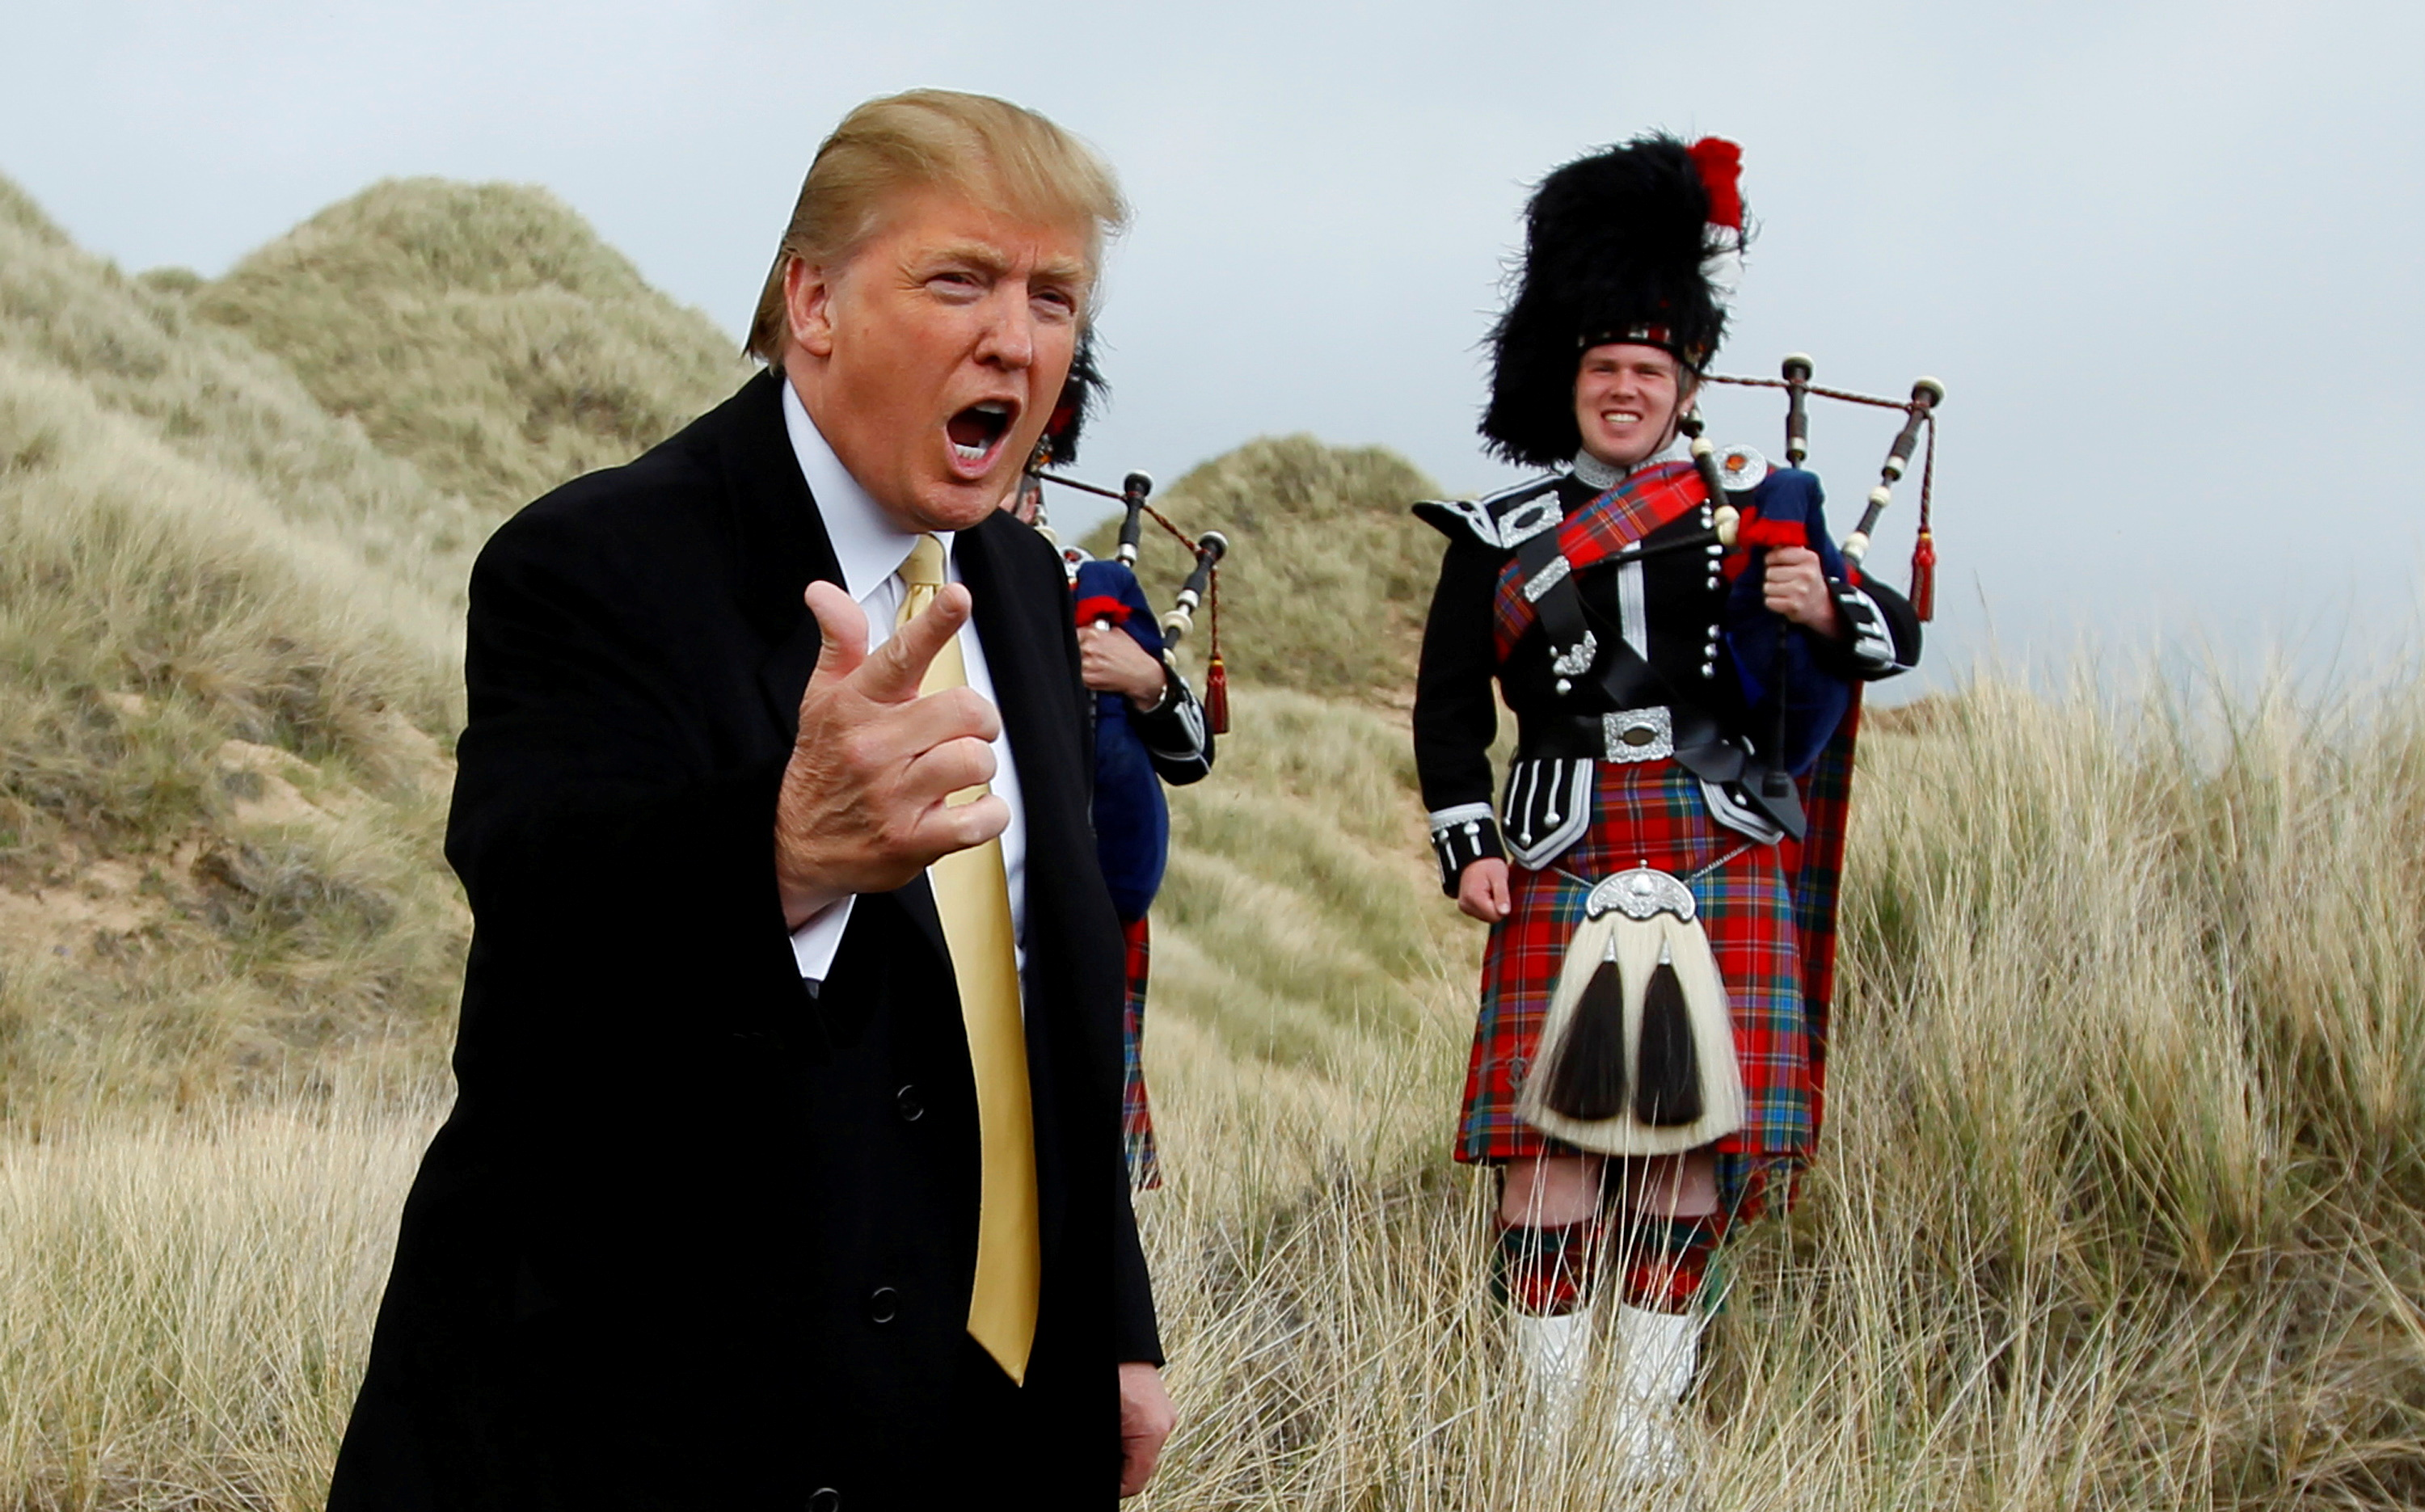 U.S. property mogul Donald Trump gestures during a media event on the sand dunes of the Menie estate, the site for Trump's proposed golf resort, near Aberdeen, north east Scotland May 27, 2010.  REUTERS/David Moir/File Photo/File Photo